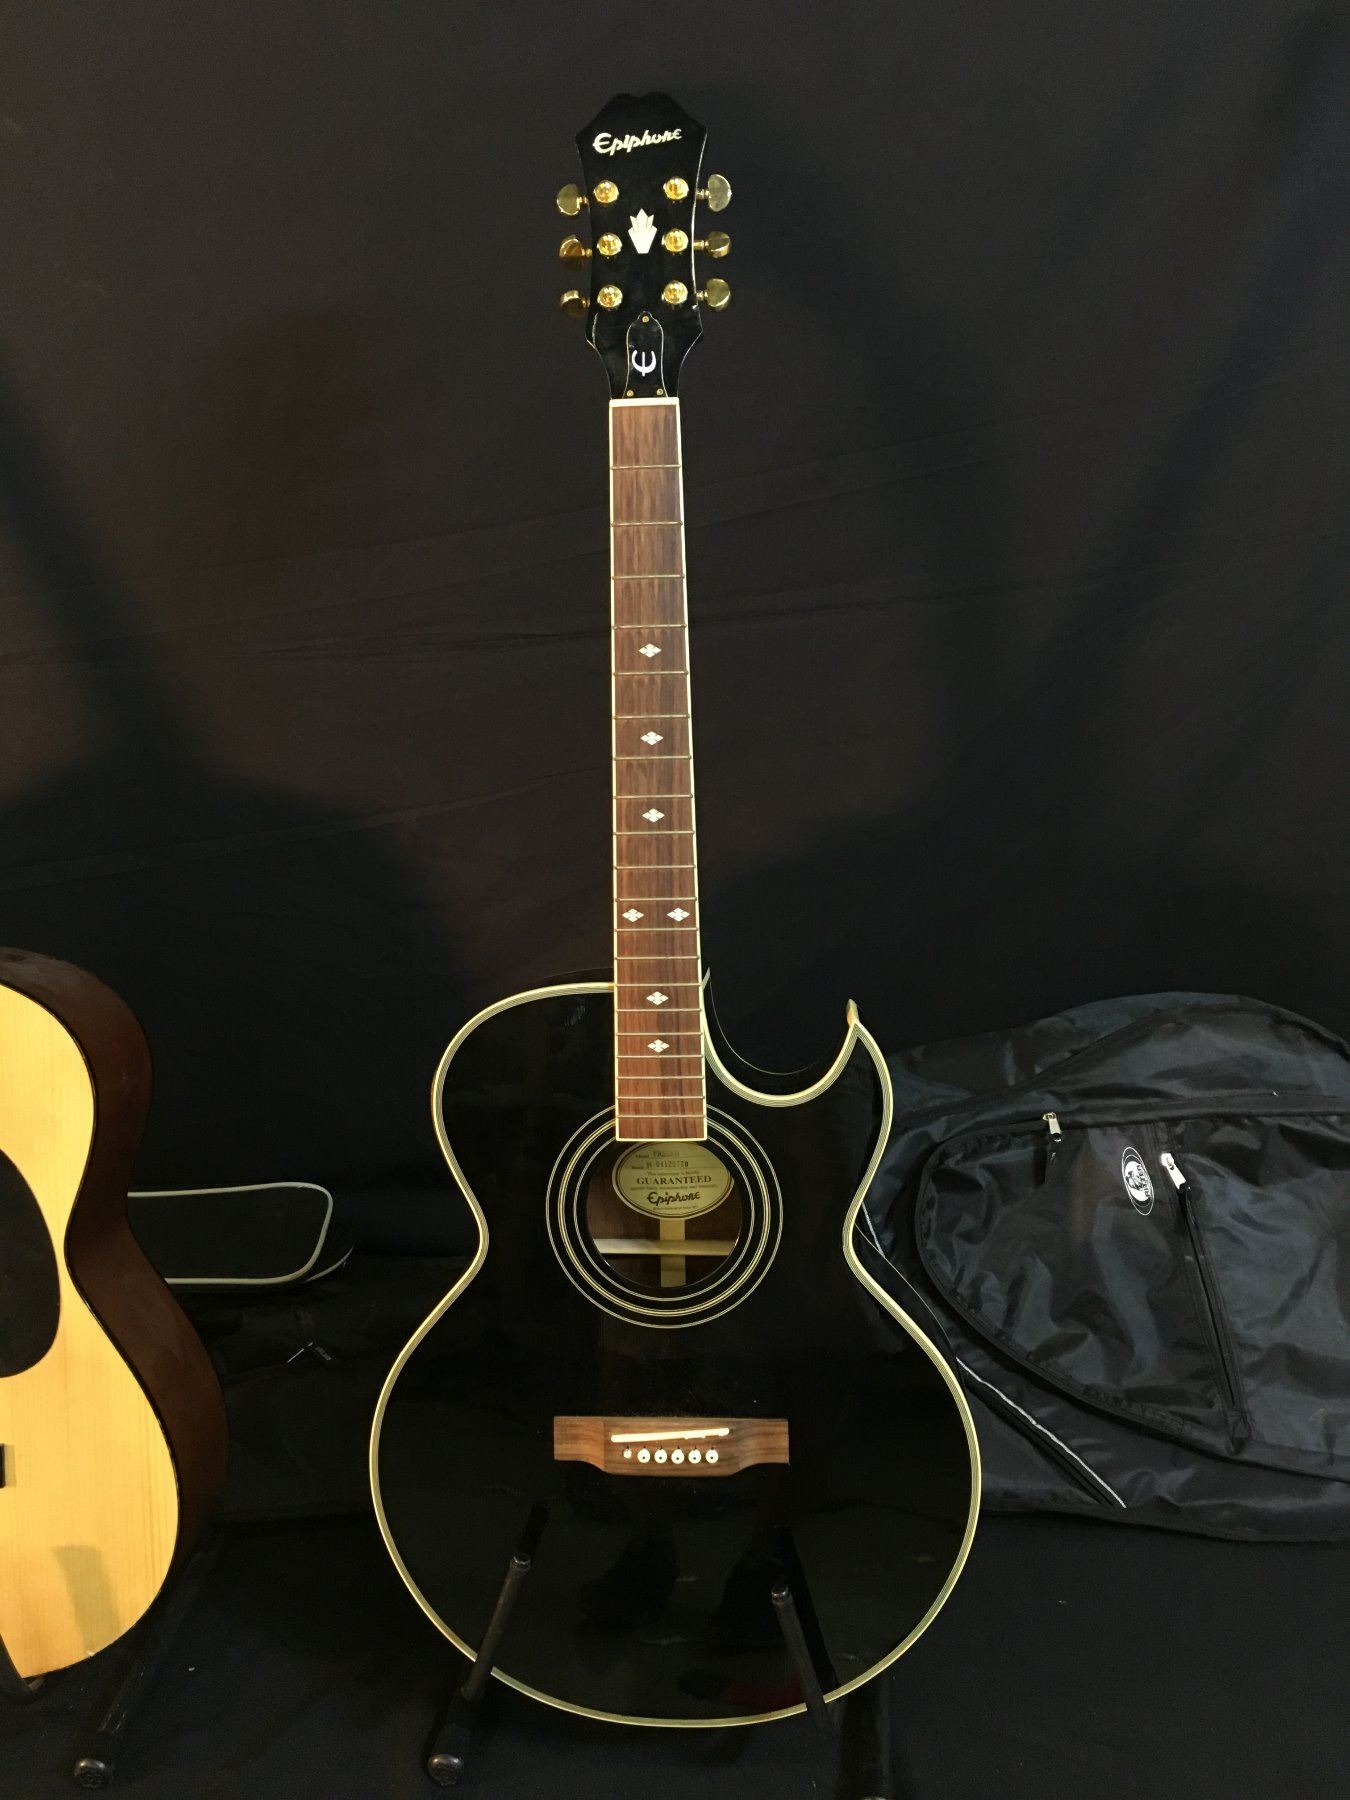 3 guitars epiphone model pr5eeb cutaway acoustic electric guitar with soft shell case hohner. Black Bedroom Furniture Sets. Home Design Ideas